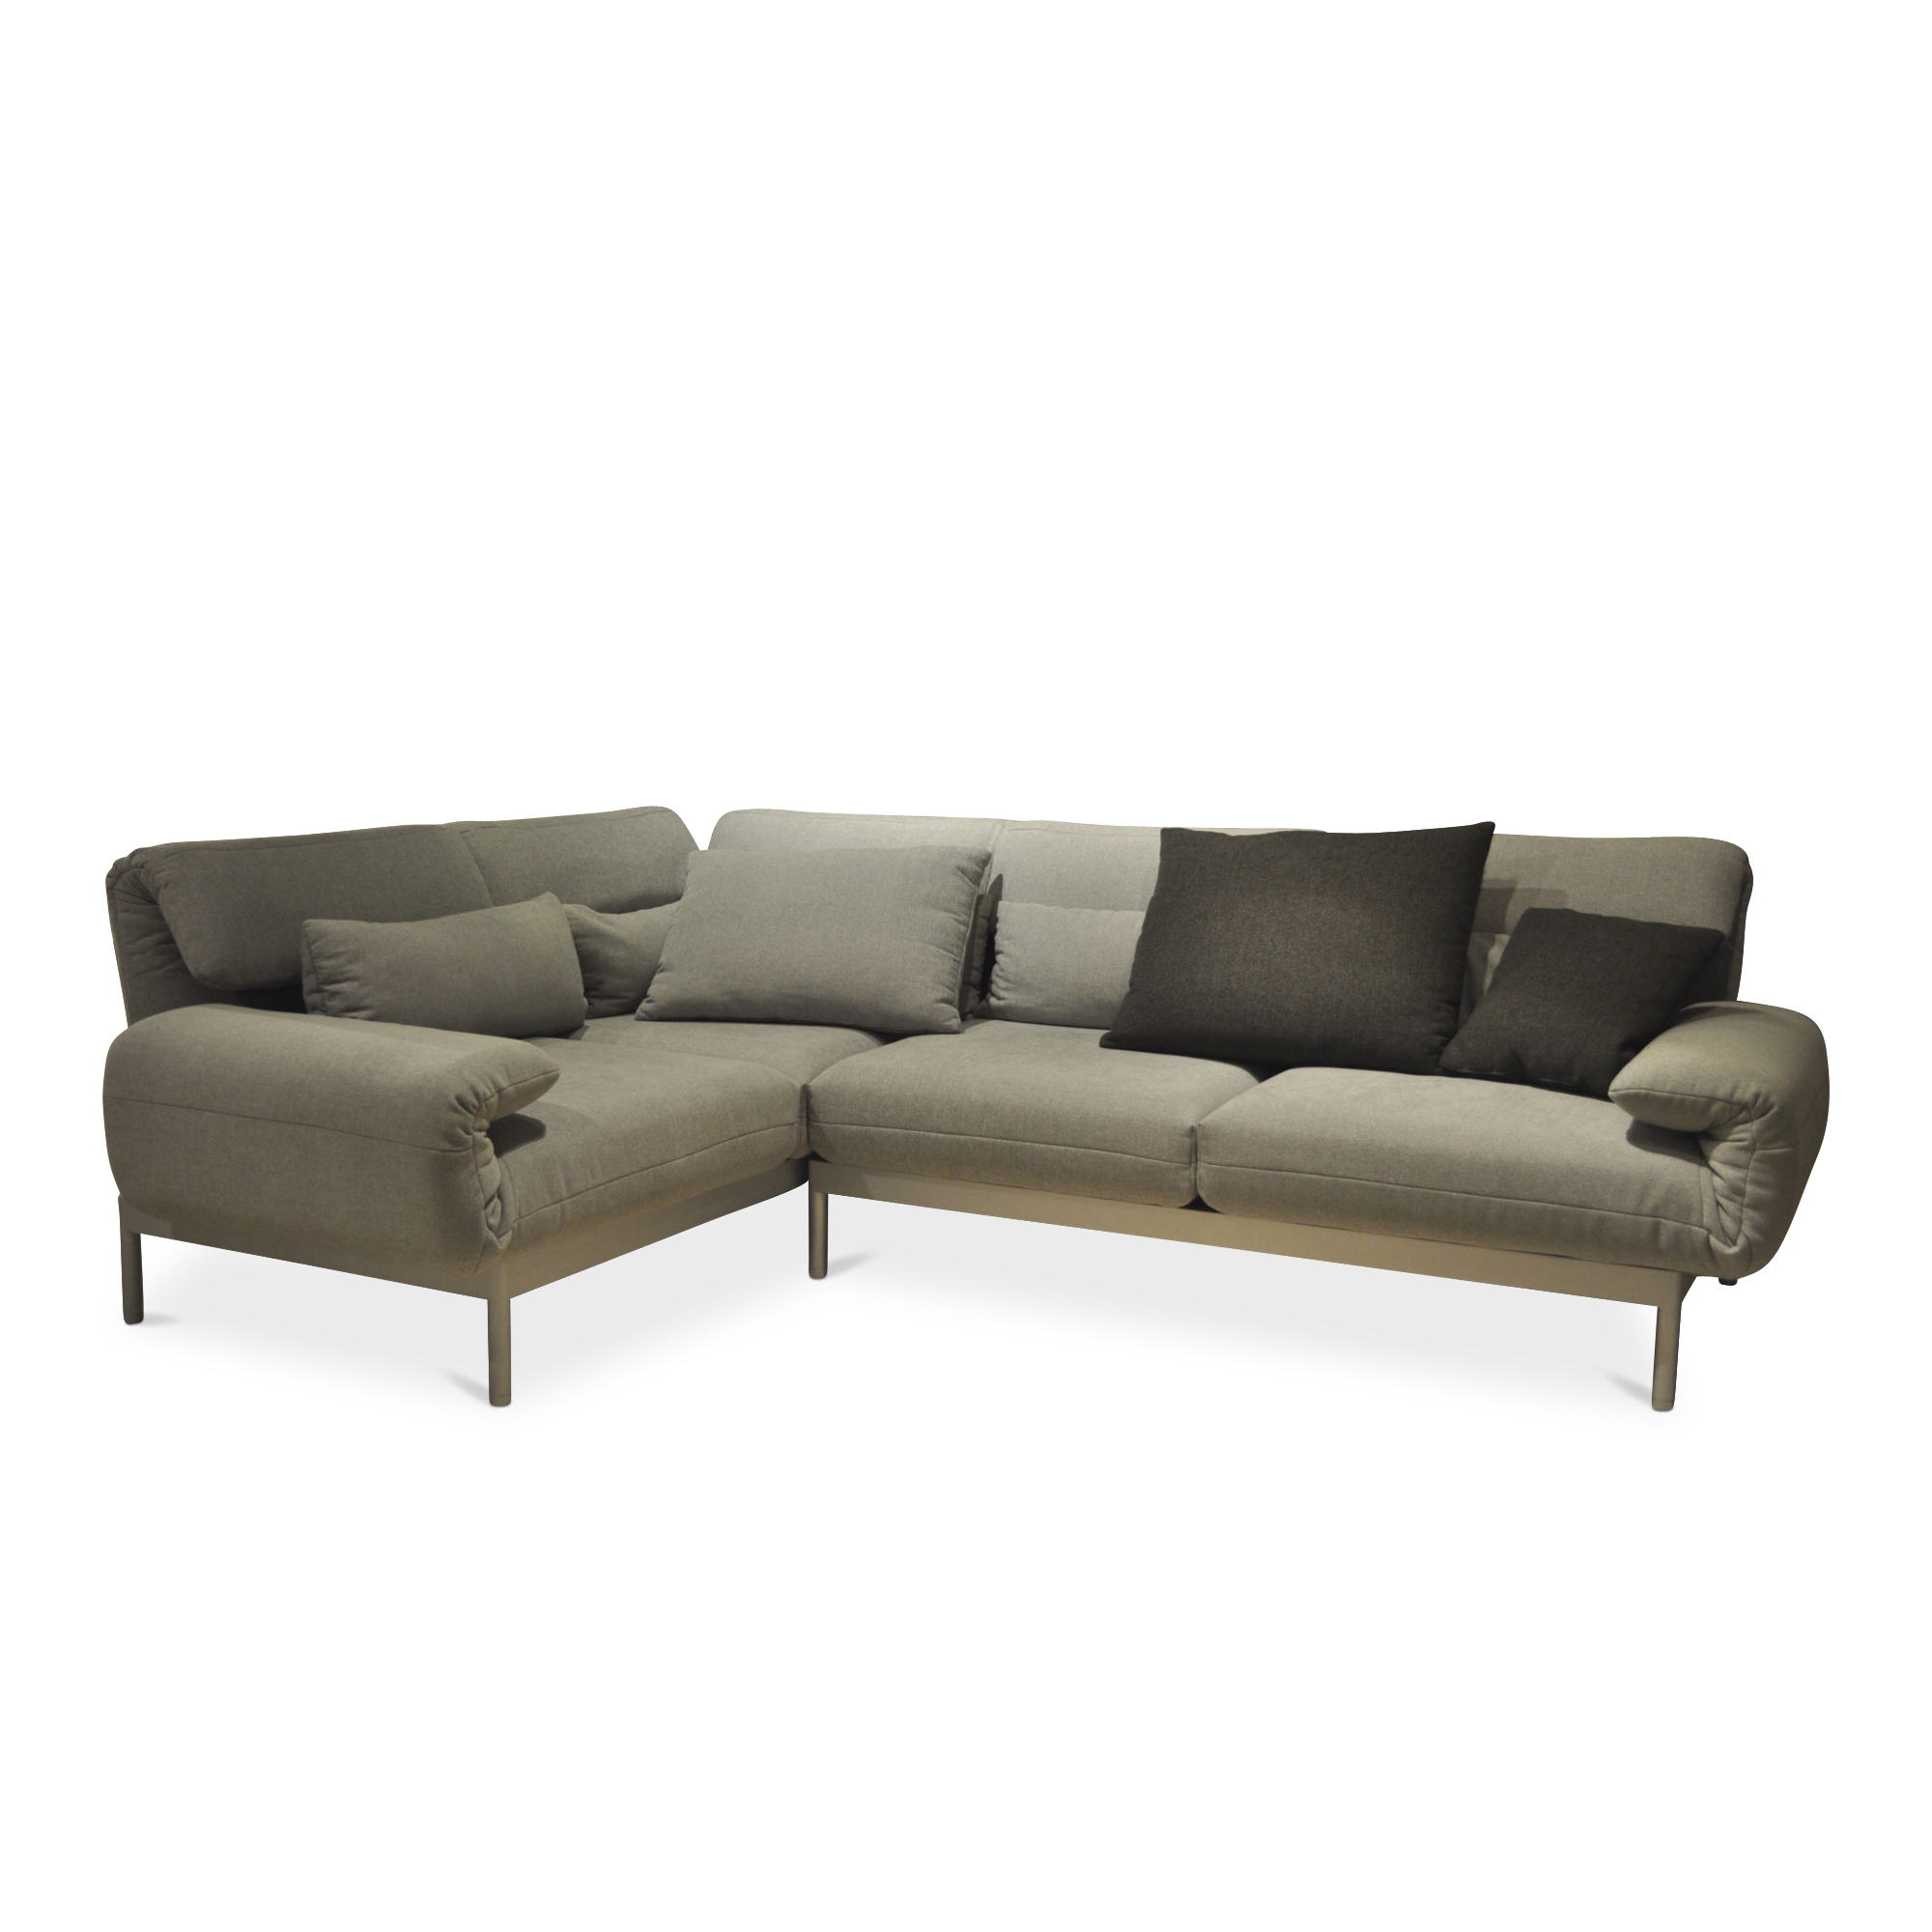 ecksofa plura mit liegefunktion rolf benz sofas g nstig kaufen m belfirst. Black Bedroom Furniture Sets. Home Design Ideas